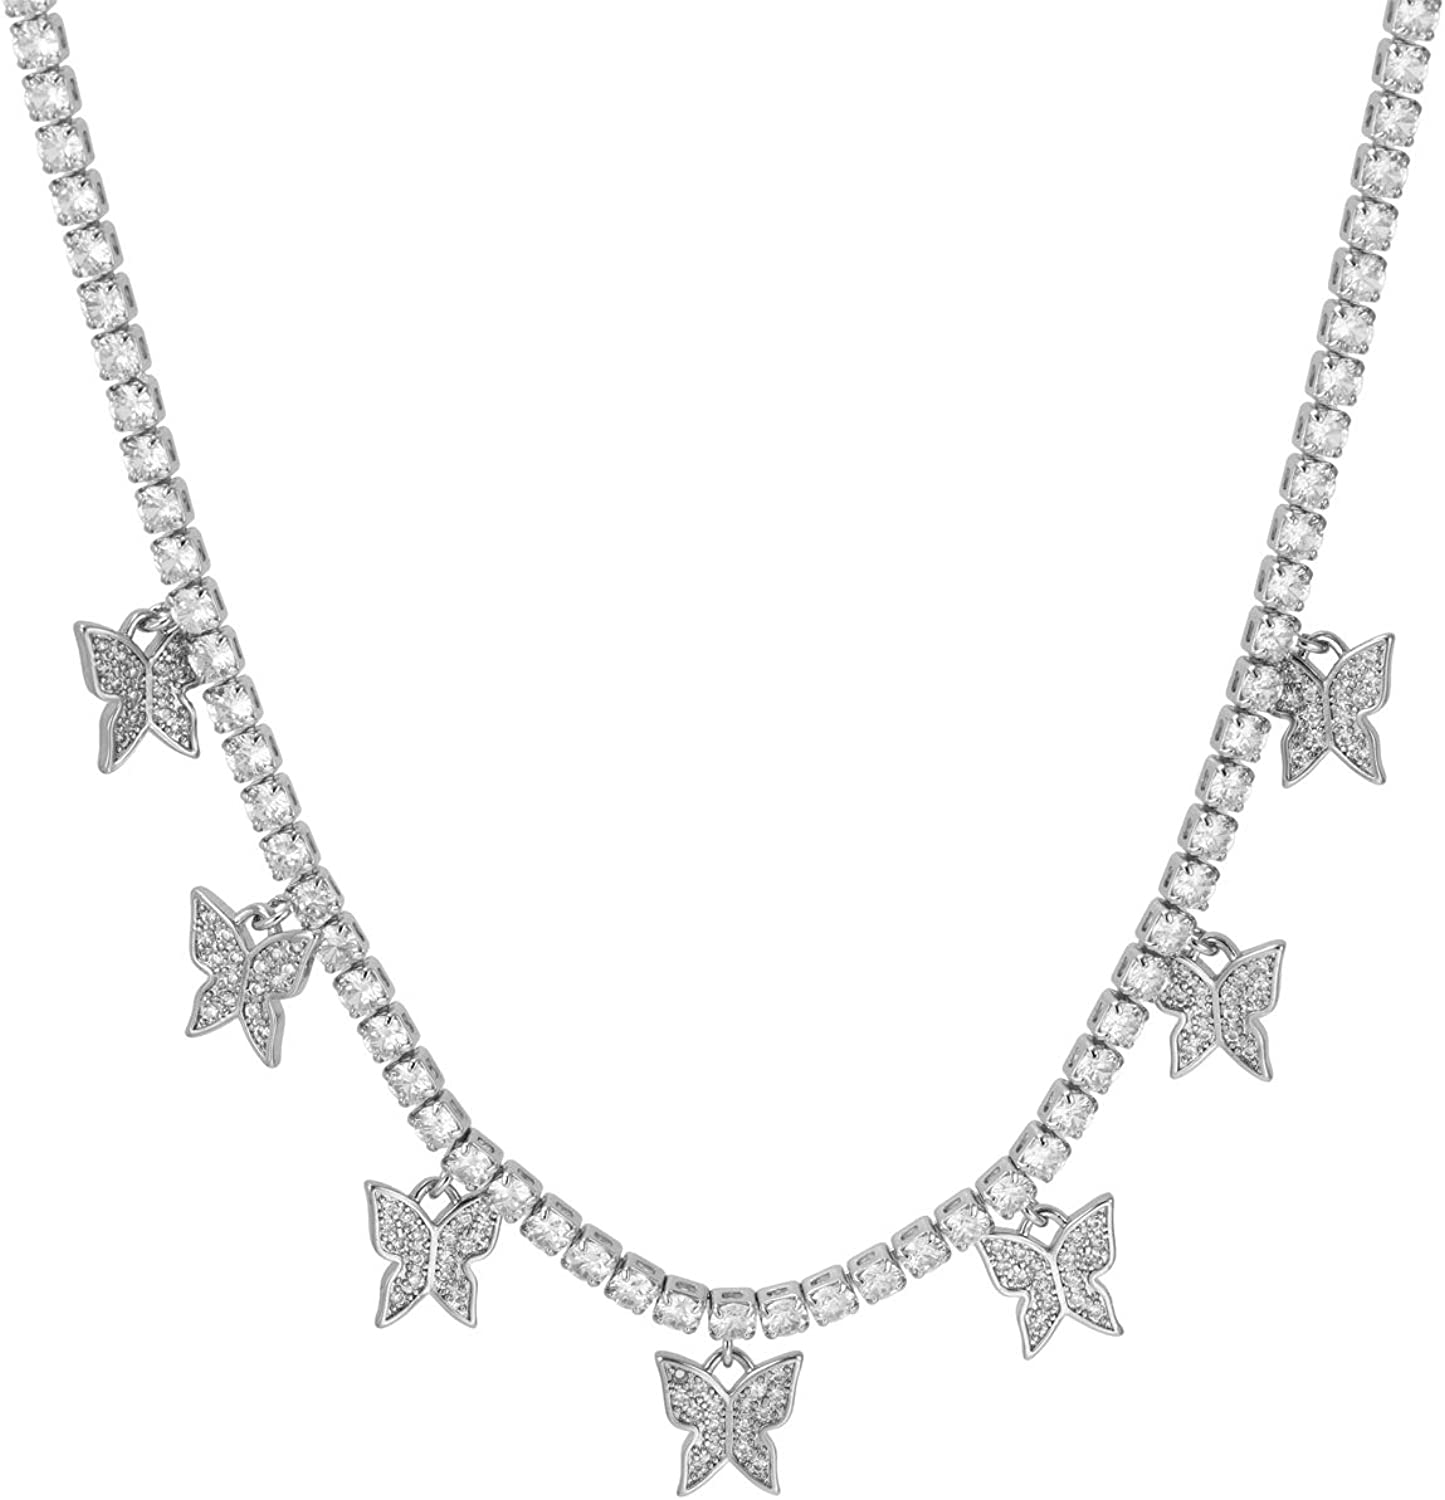 Butterfly Necklace Crystal Chain Butterfly Choker Bling Iced CZ Butterfly Necklace Silver Women